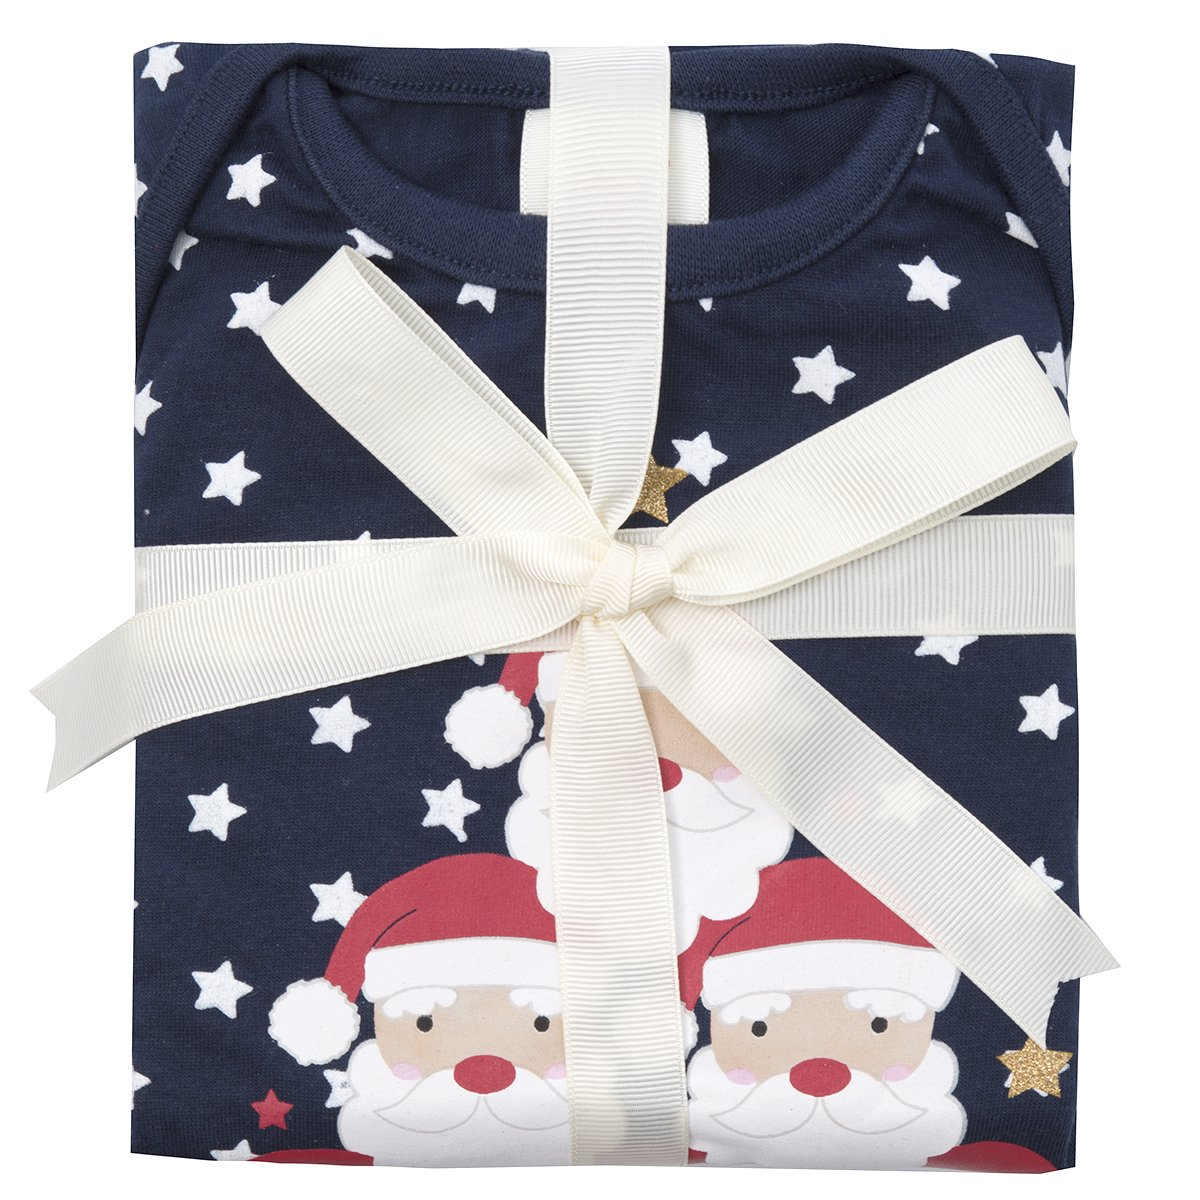 Sizes 6-24 Months Unisex Baby Toddler 100/% Cotton Novelty Christmas Pyjama PJ Set QT